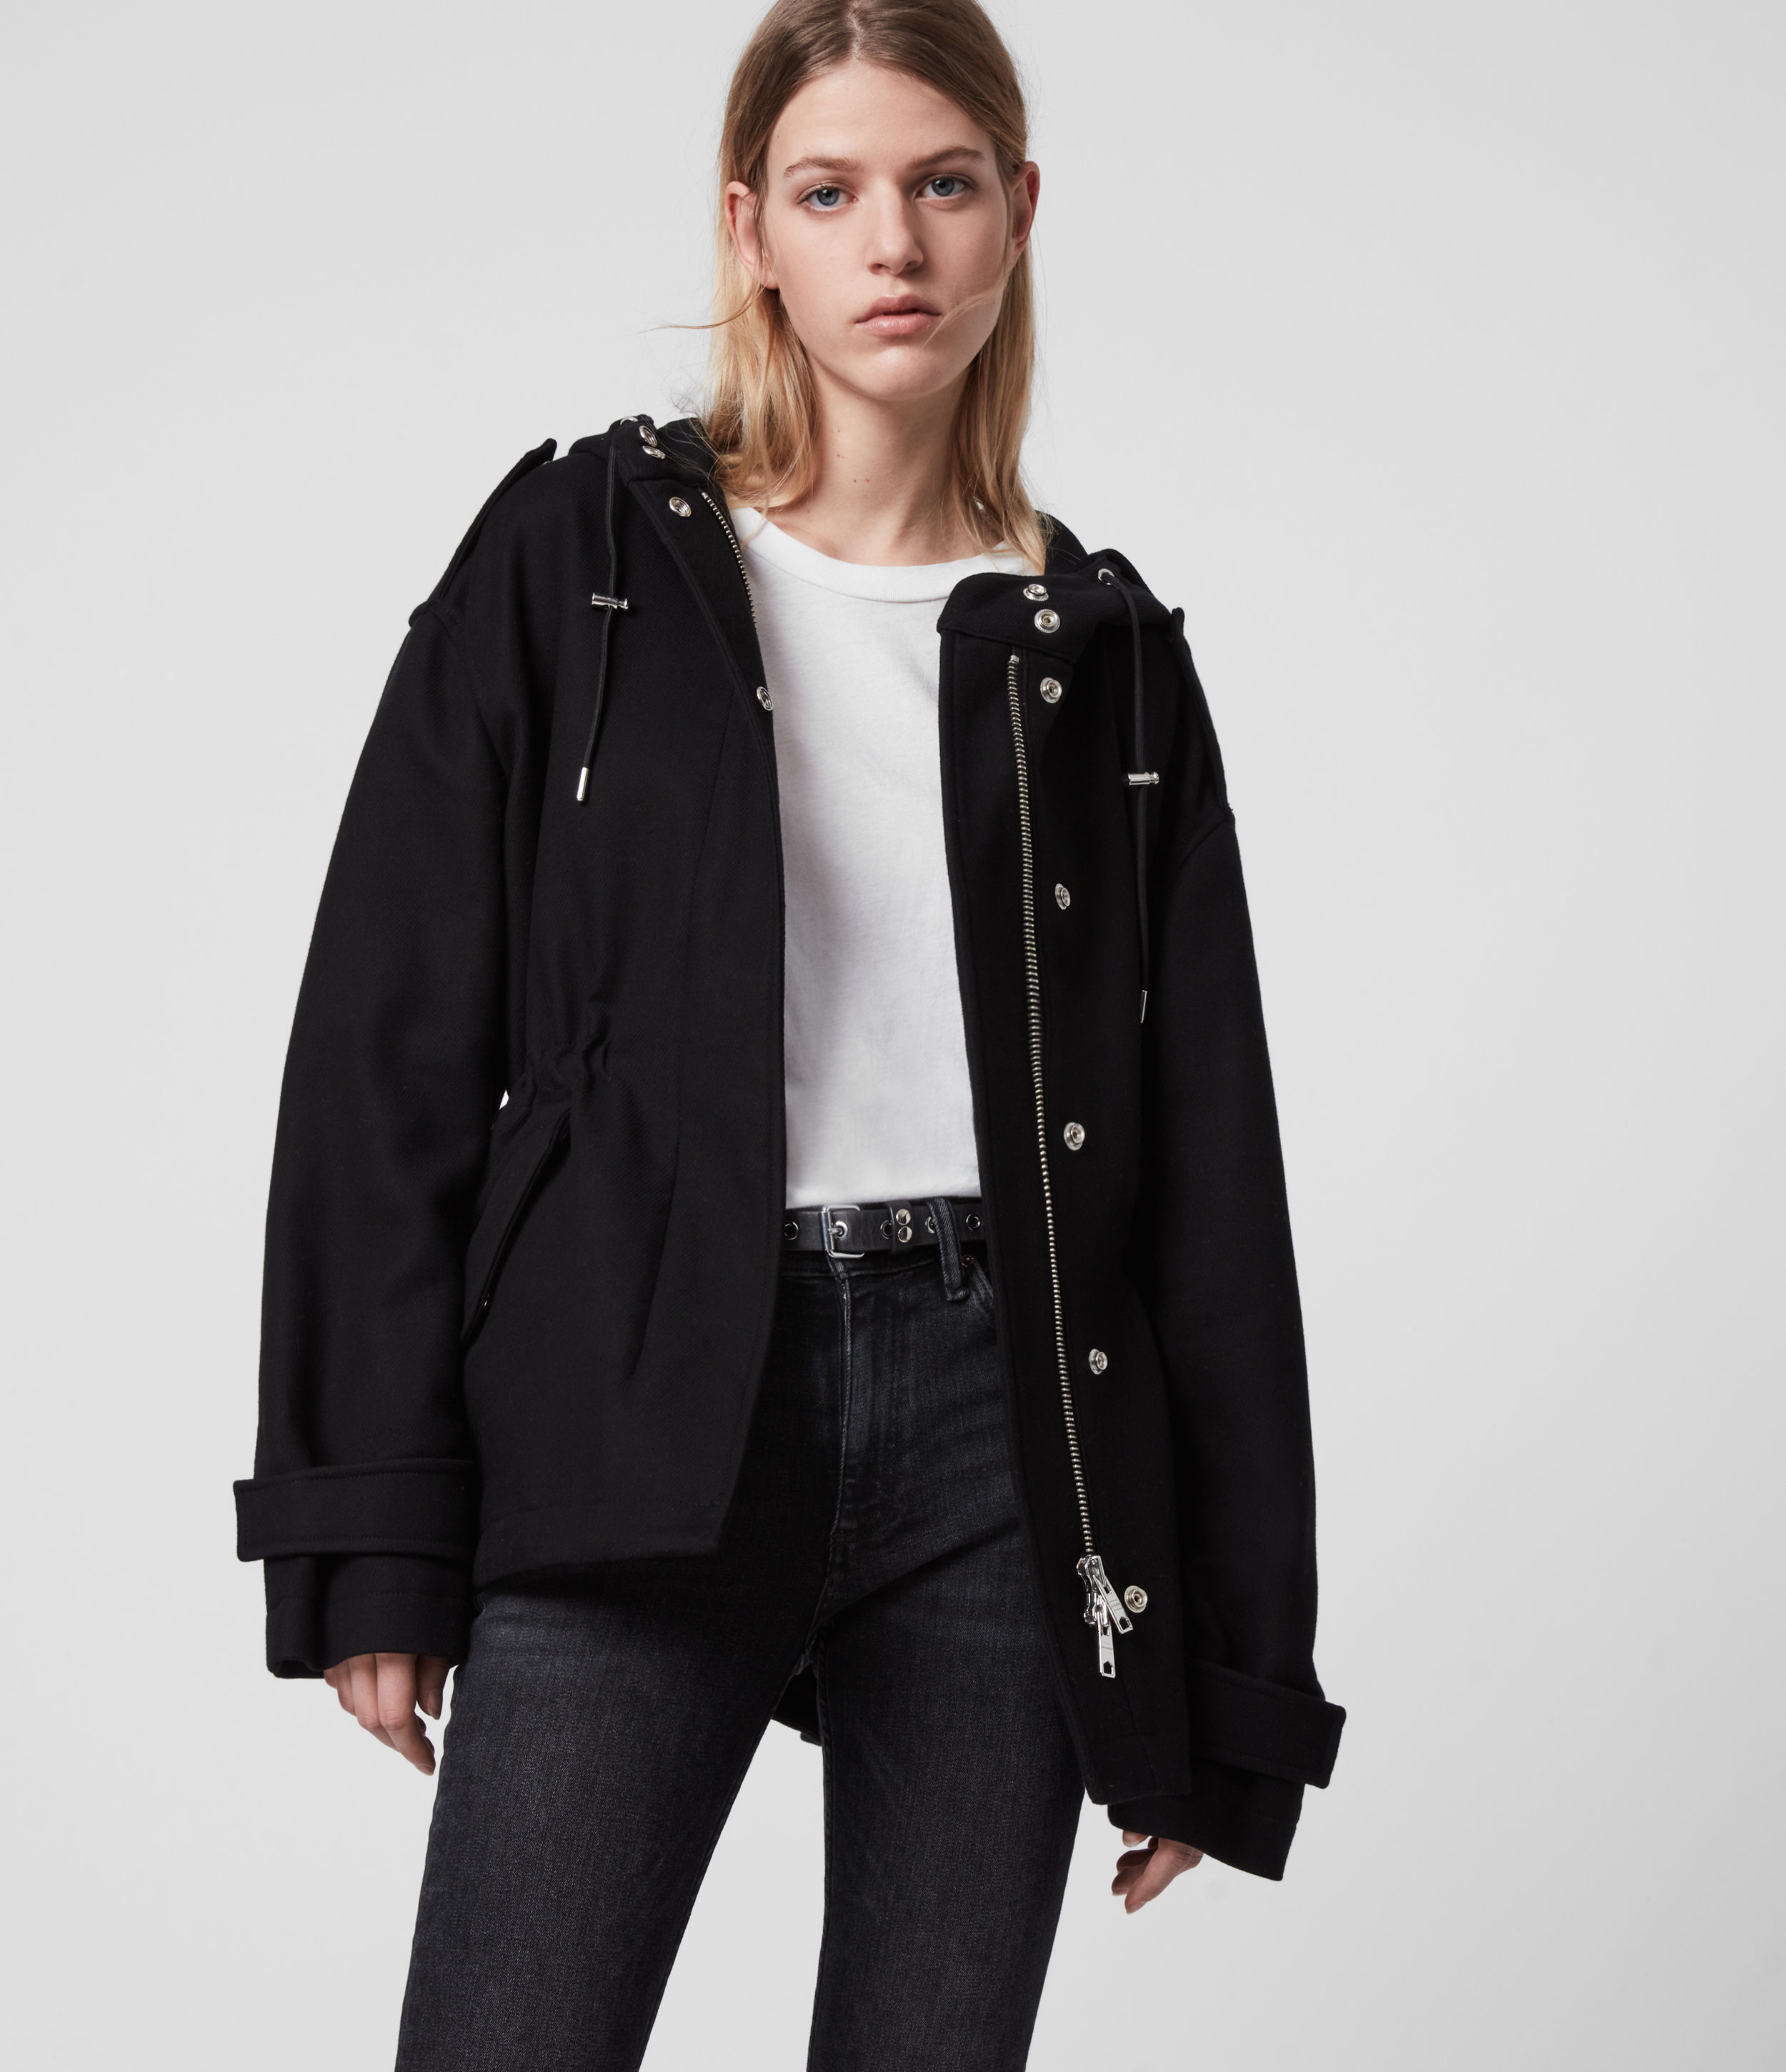 AllSaints Women's Cotton Kelsie Jacket, Black, Size: XS